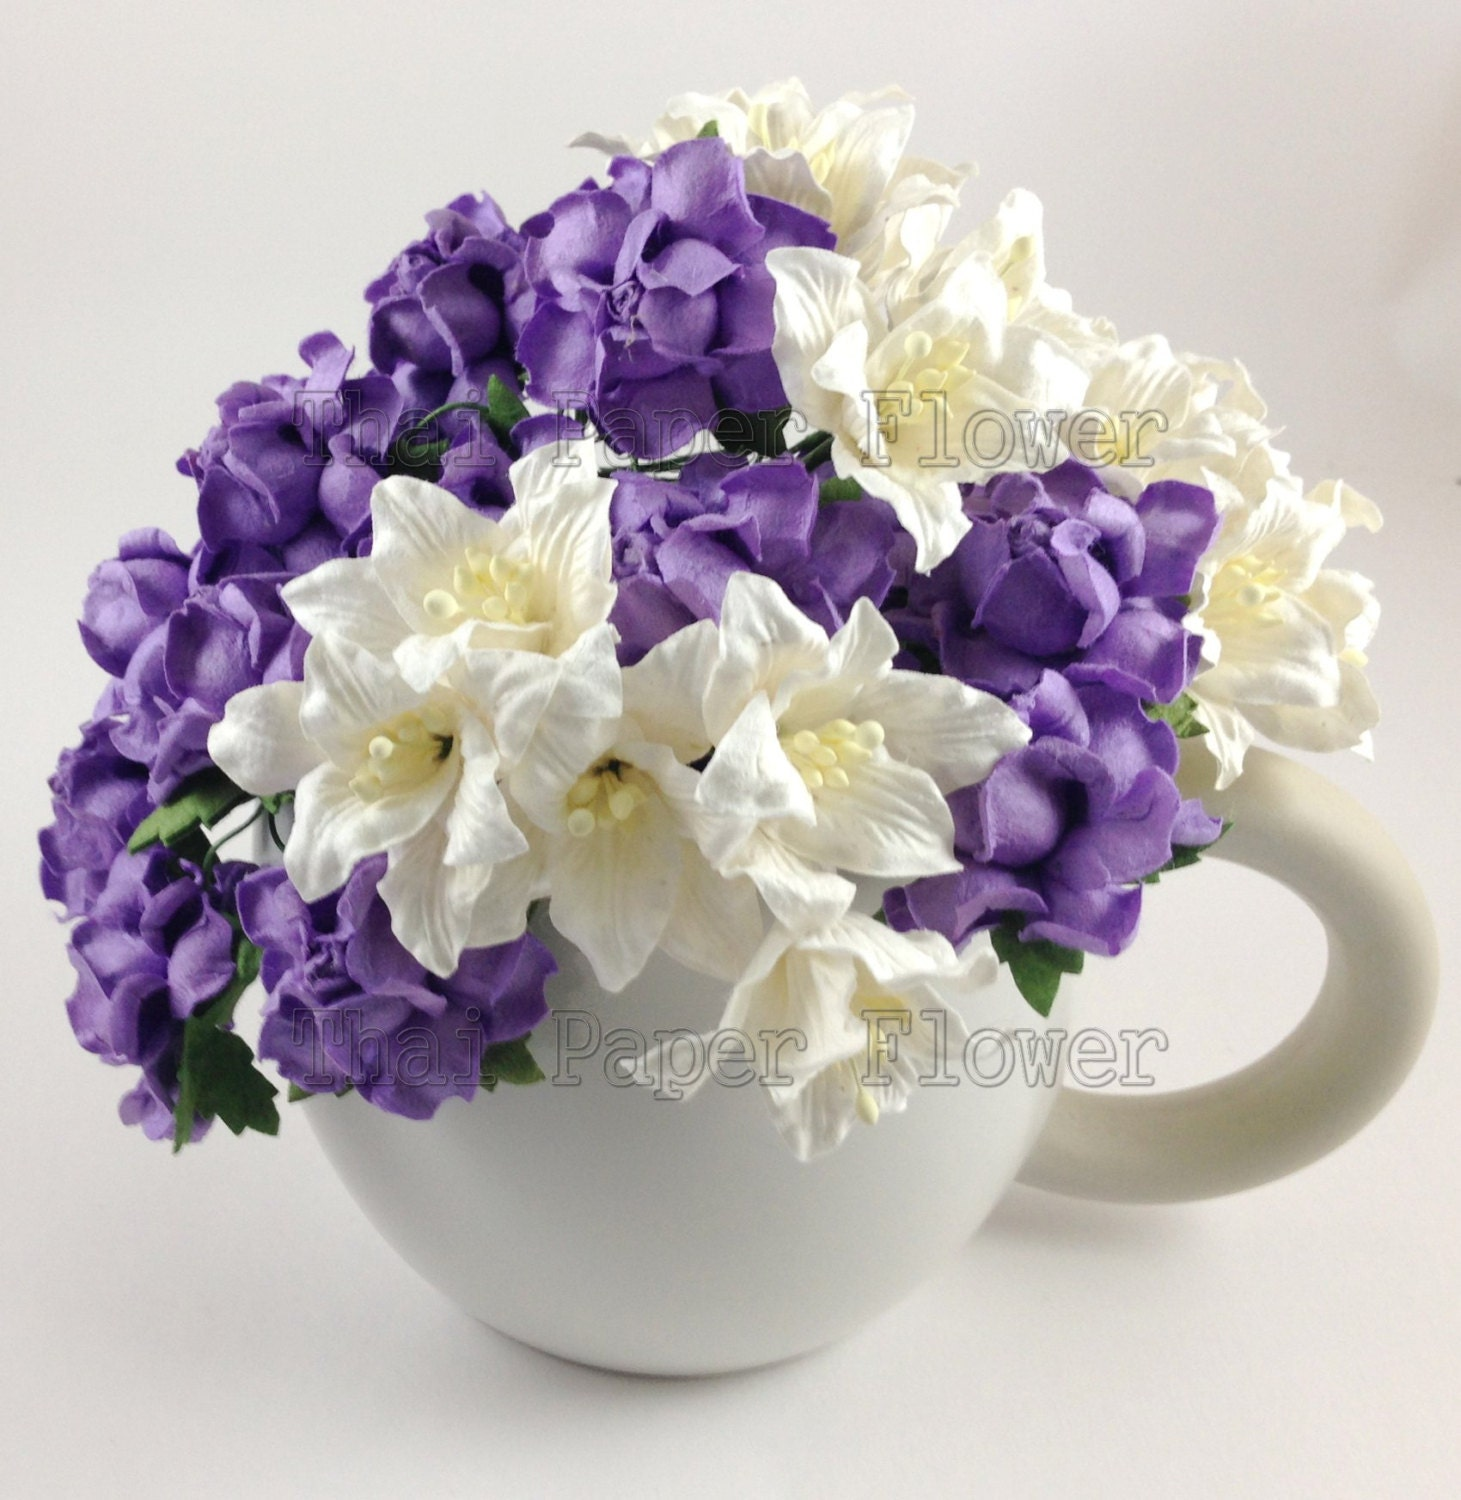 30 purple roses and white lily mulberry paper flowers etsy zoom izmirmasajfo